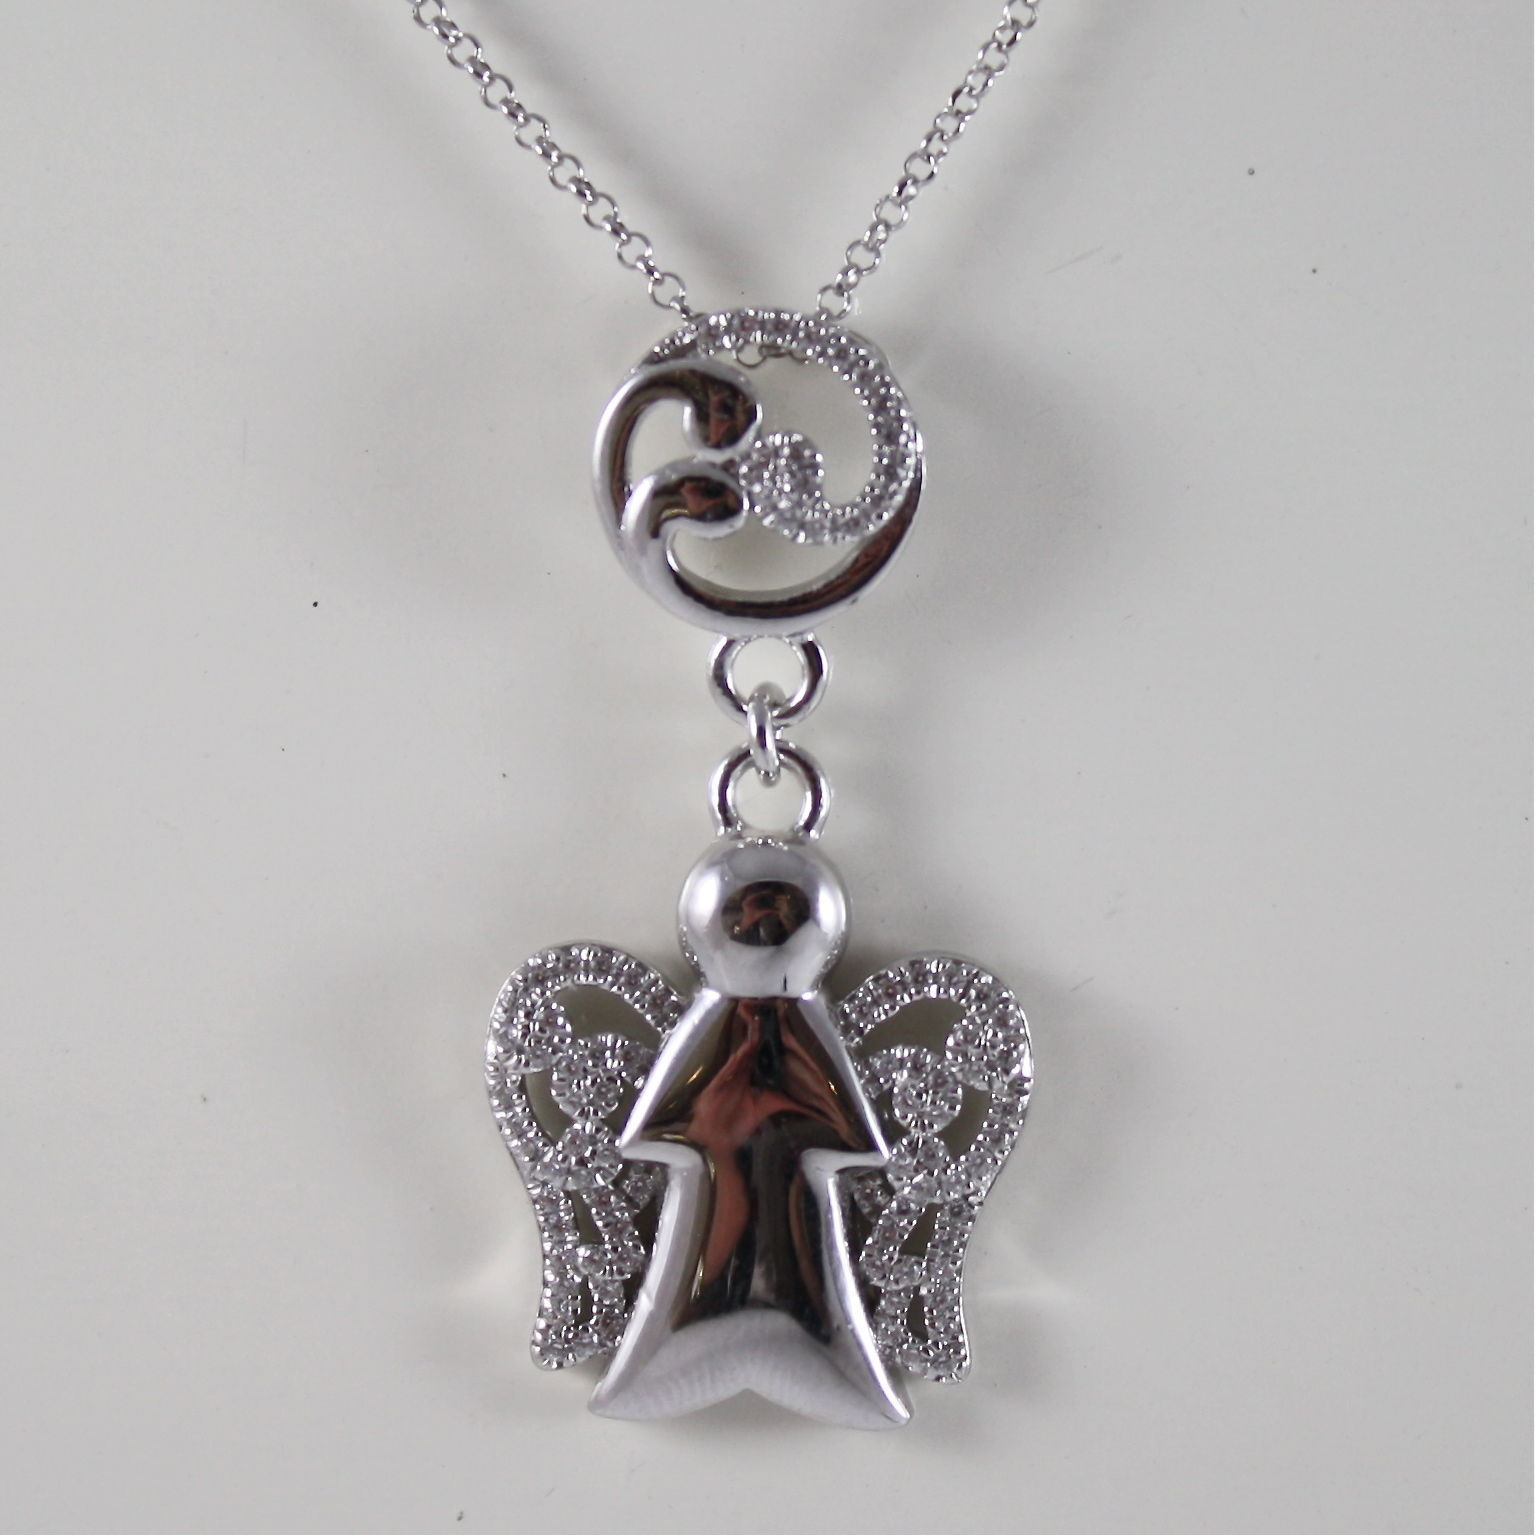 925 SILVER NECKLACE WITH ANGEL PENDANT GIA91 MADE IN ITALY BY ROBERTO GIANNOTTI